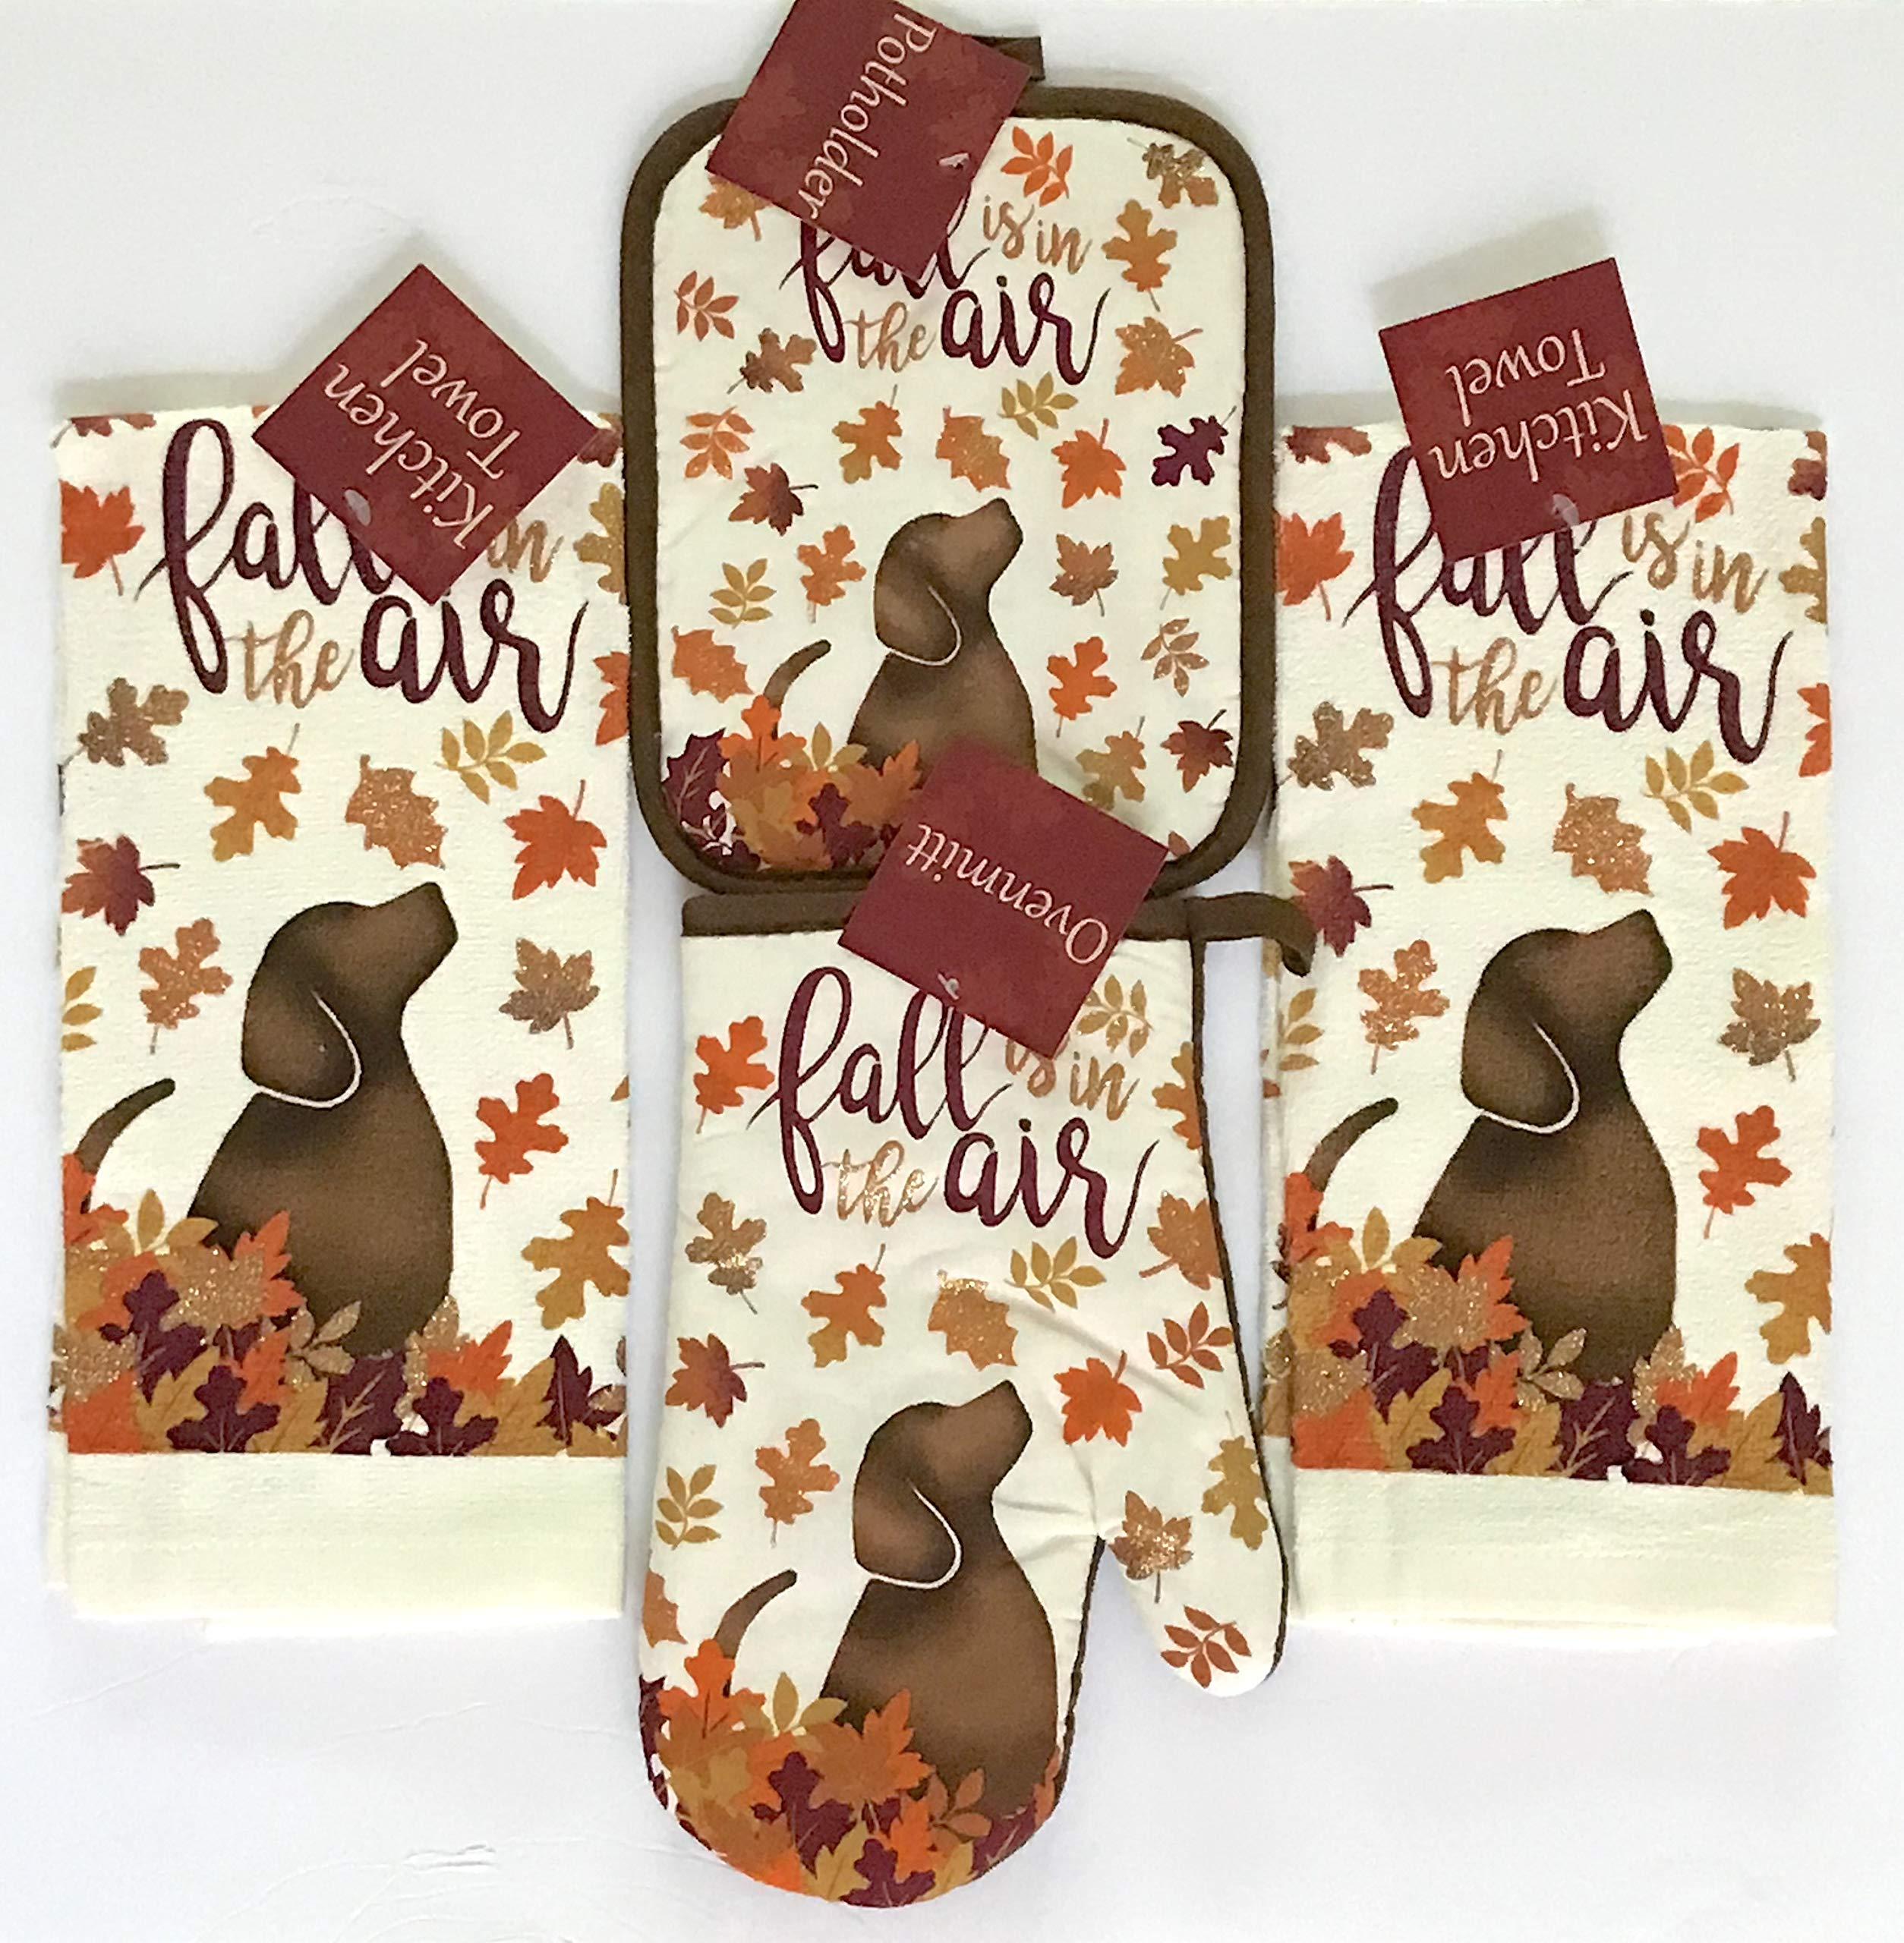 Nantucket Home Holiday Kitchen Towel Set: Fall is in The Air Dog with Colorful Leaves Including 2 Towels 1 Pot Holder and 1 Oven Mitt by Nantucket Home